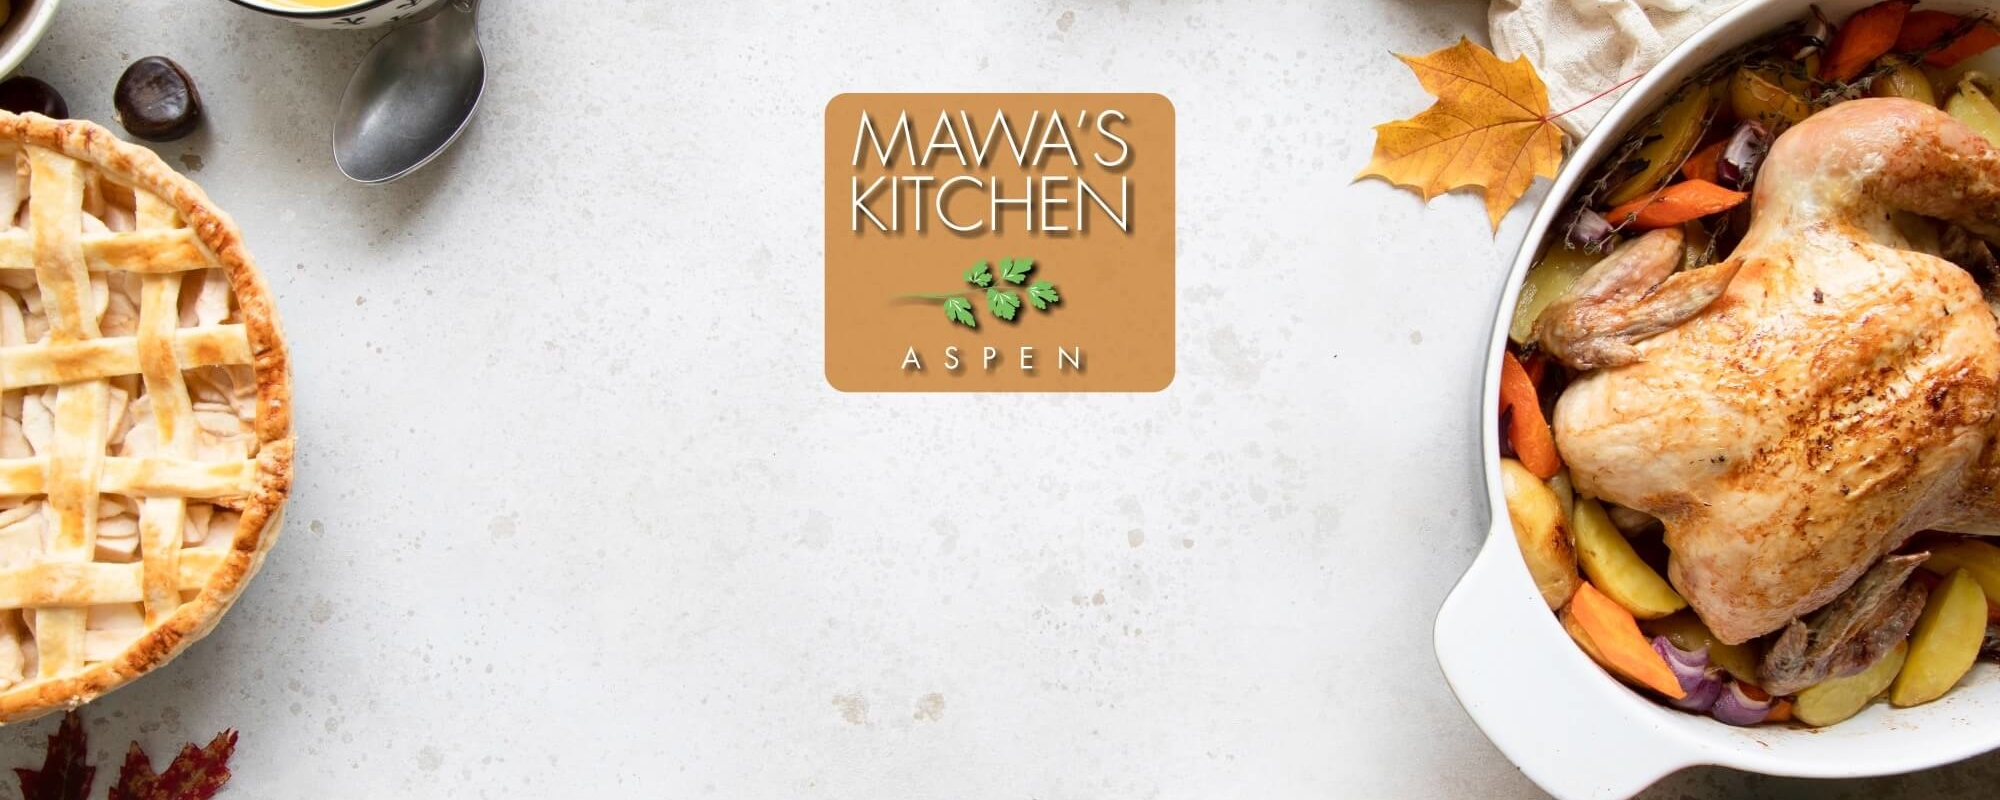 Mawa\'s Kitchen: Aspen Catering, Private Chef Services, In ...